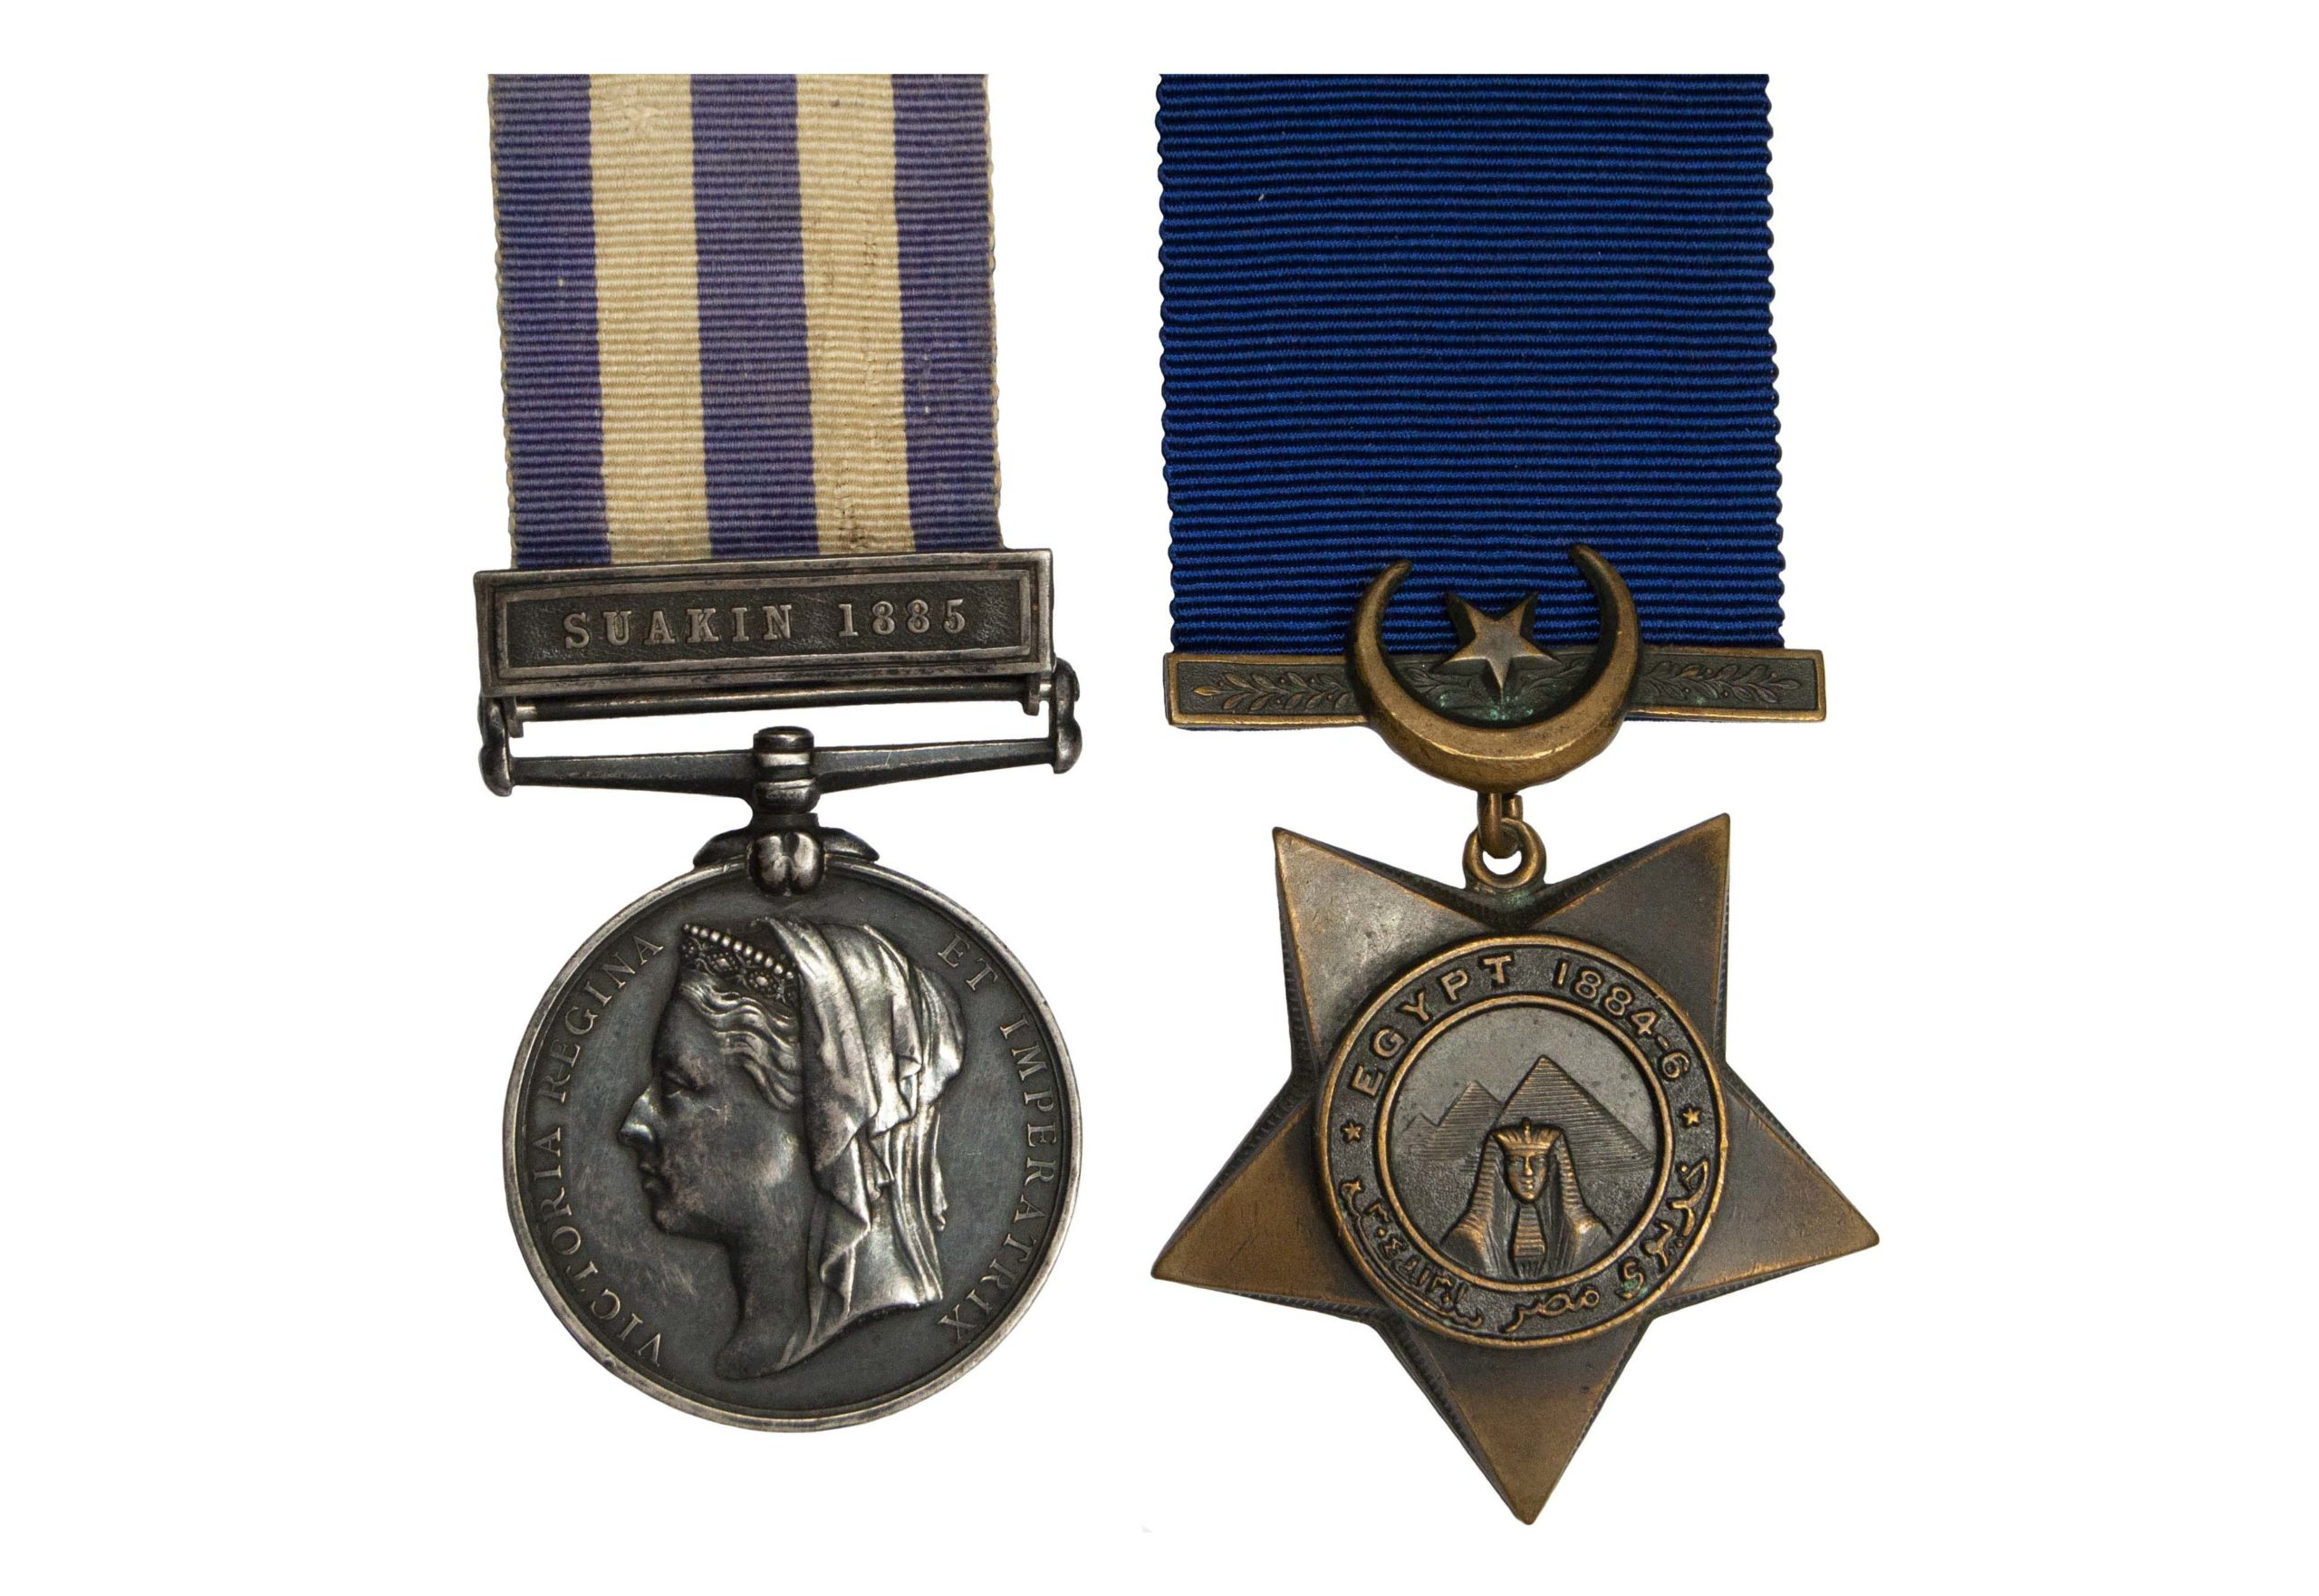 Egypt Pair to Ordinary Seaman G. Parry H.M.S. Carysfort